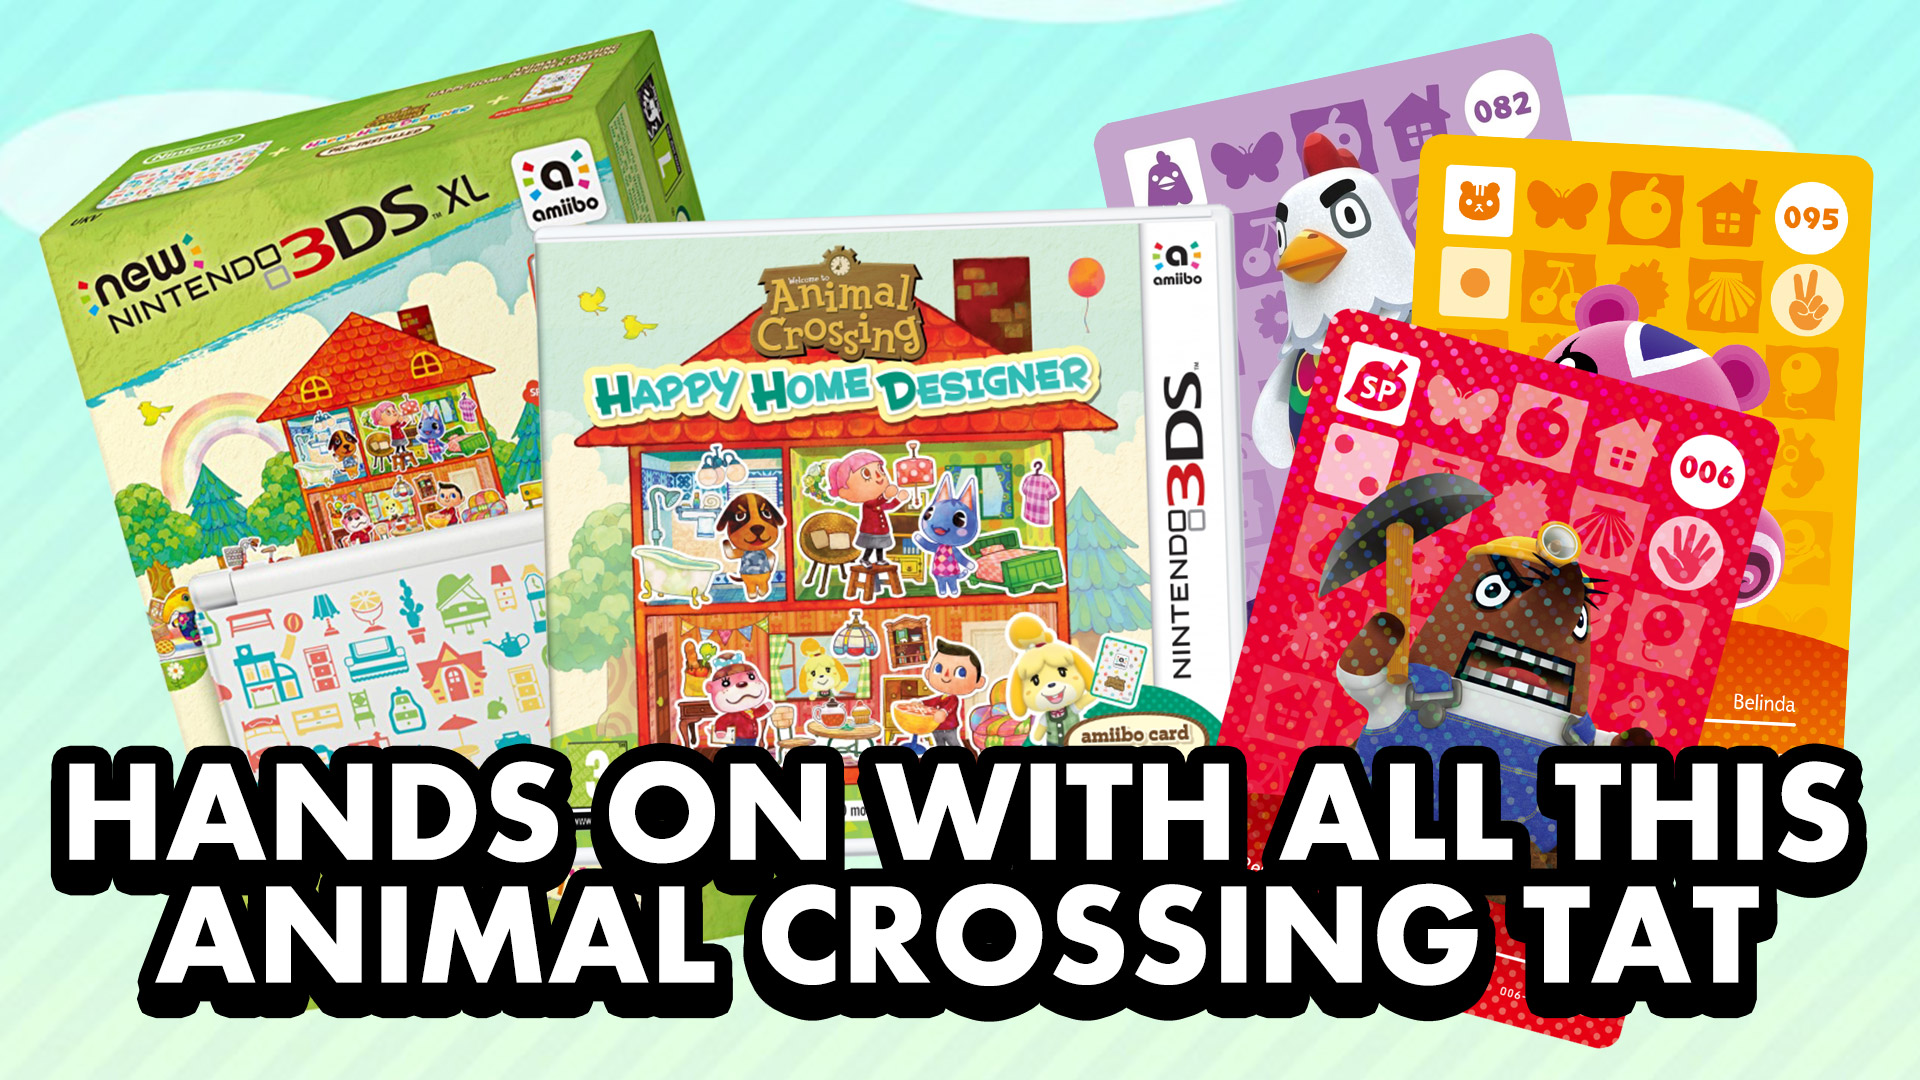 Everything you need to know about Animal Crossing Happy Home Designer